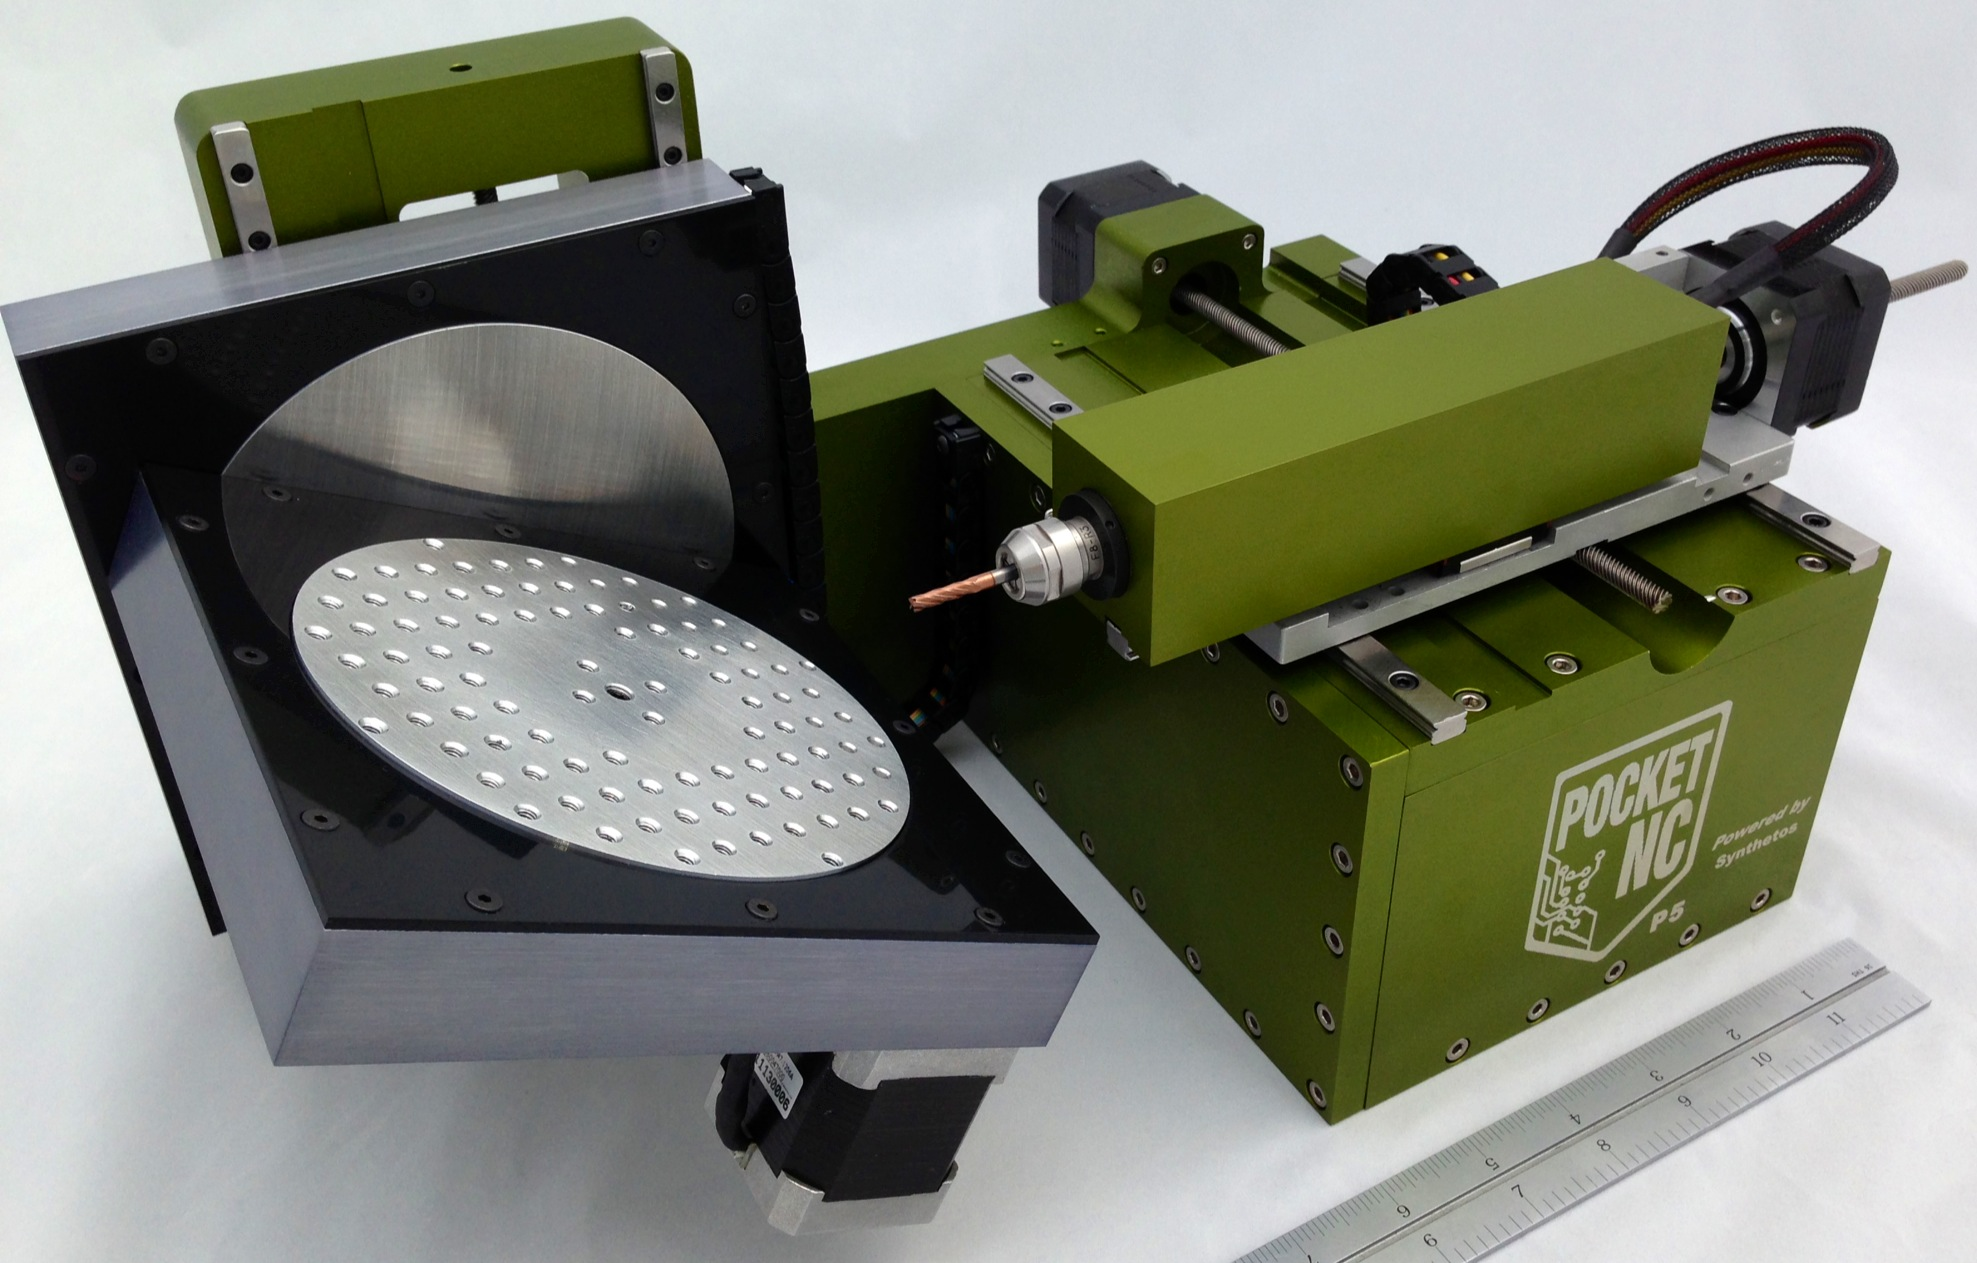 PocketNC, an Affordable Five-Axis CNC